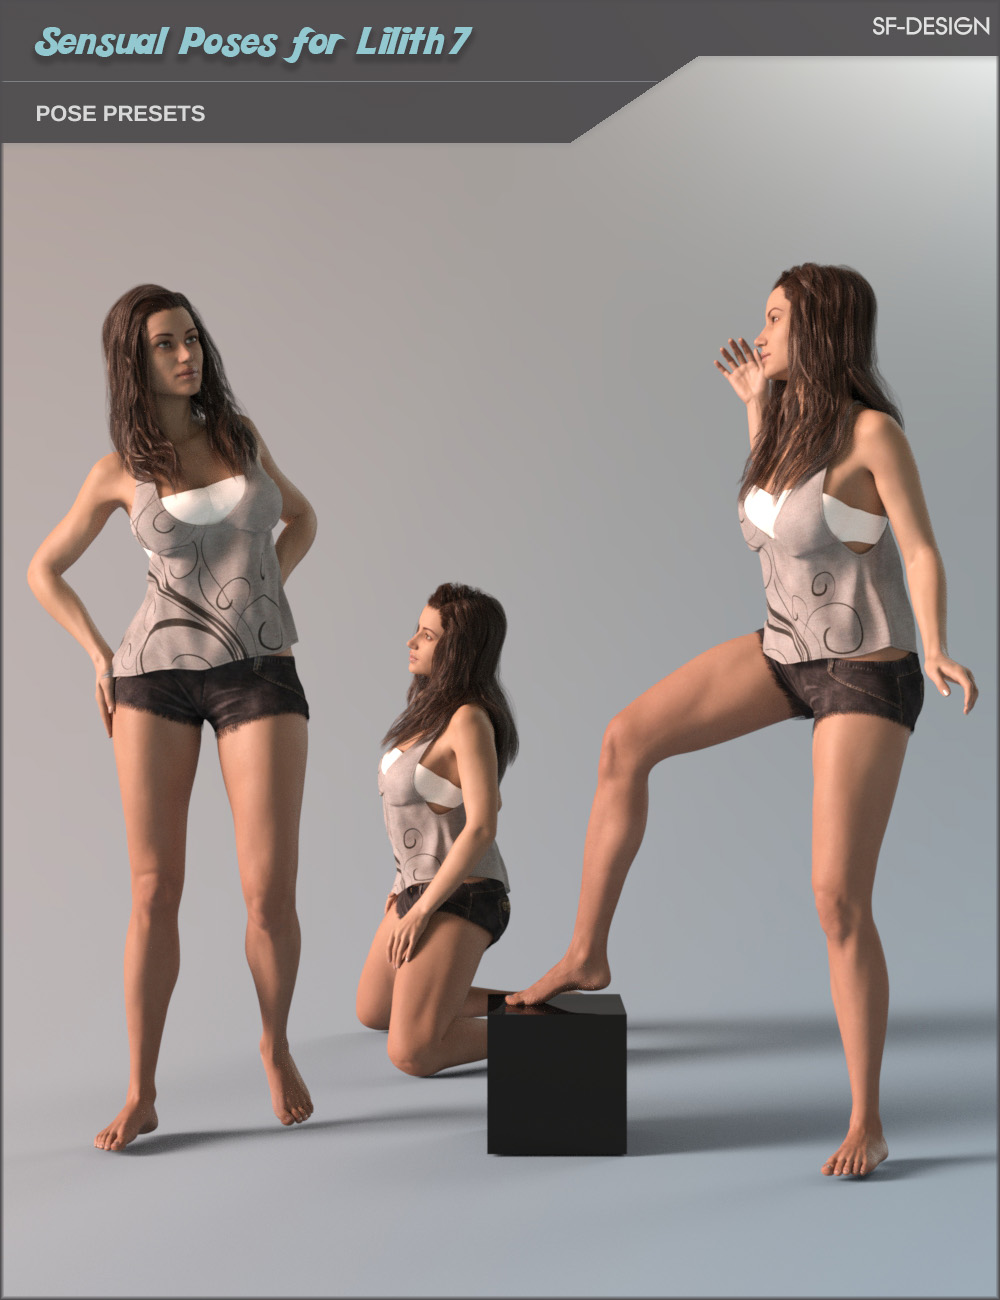 Sensual Poses for Lilith 7